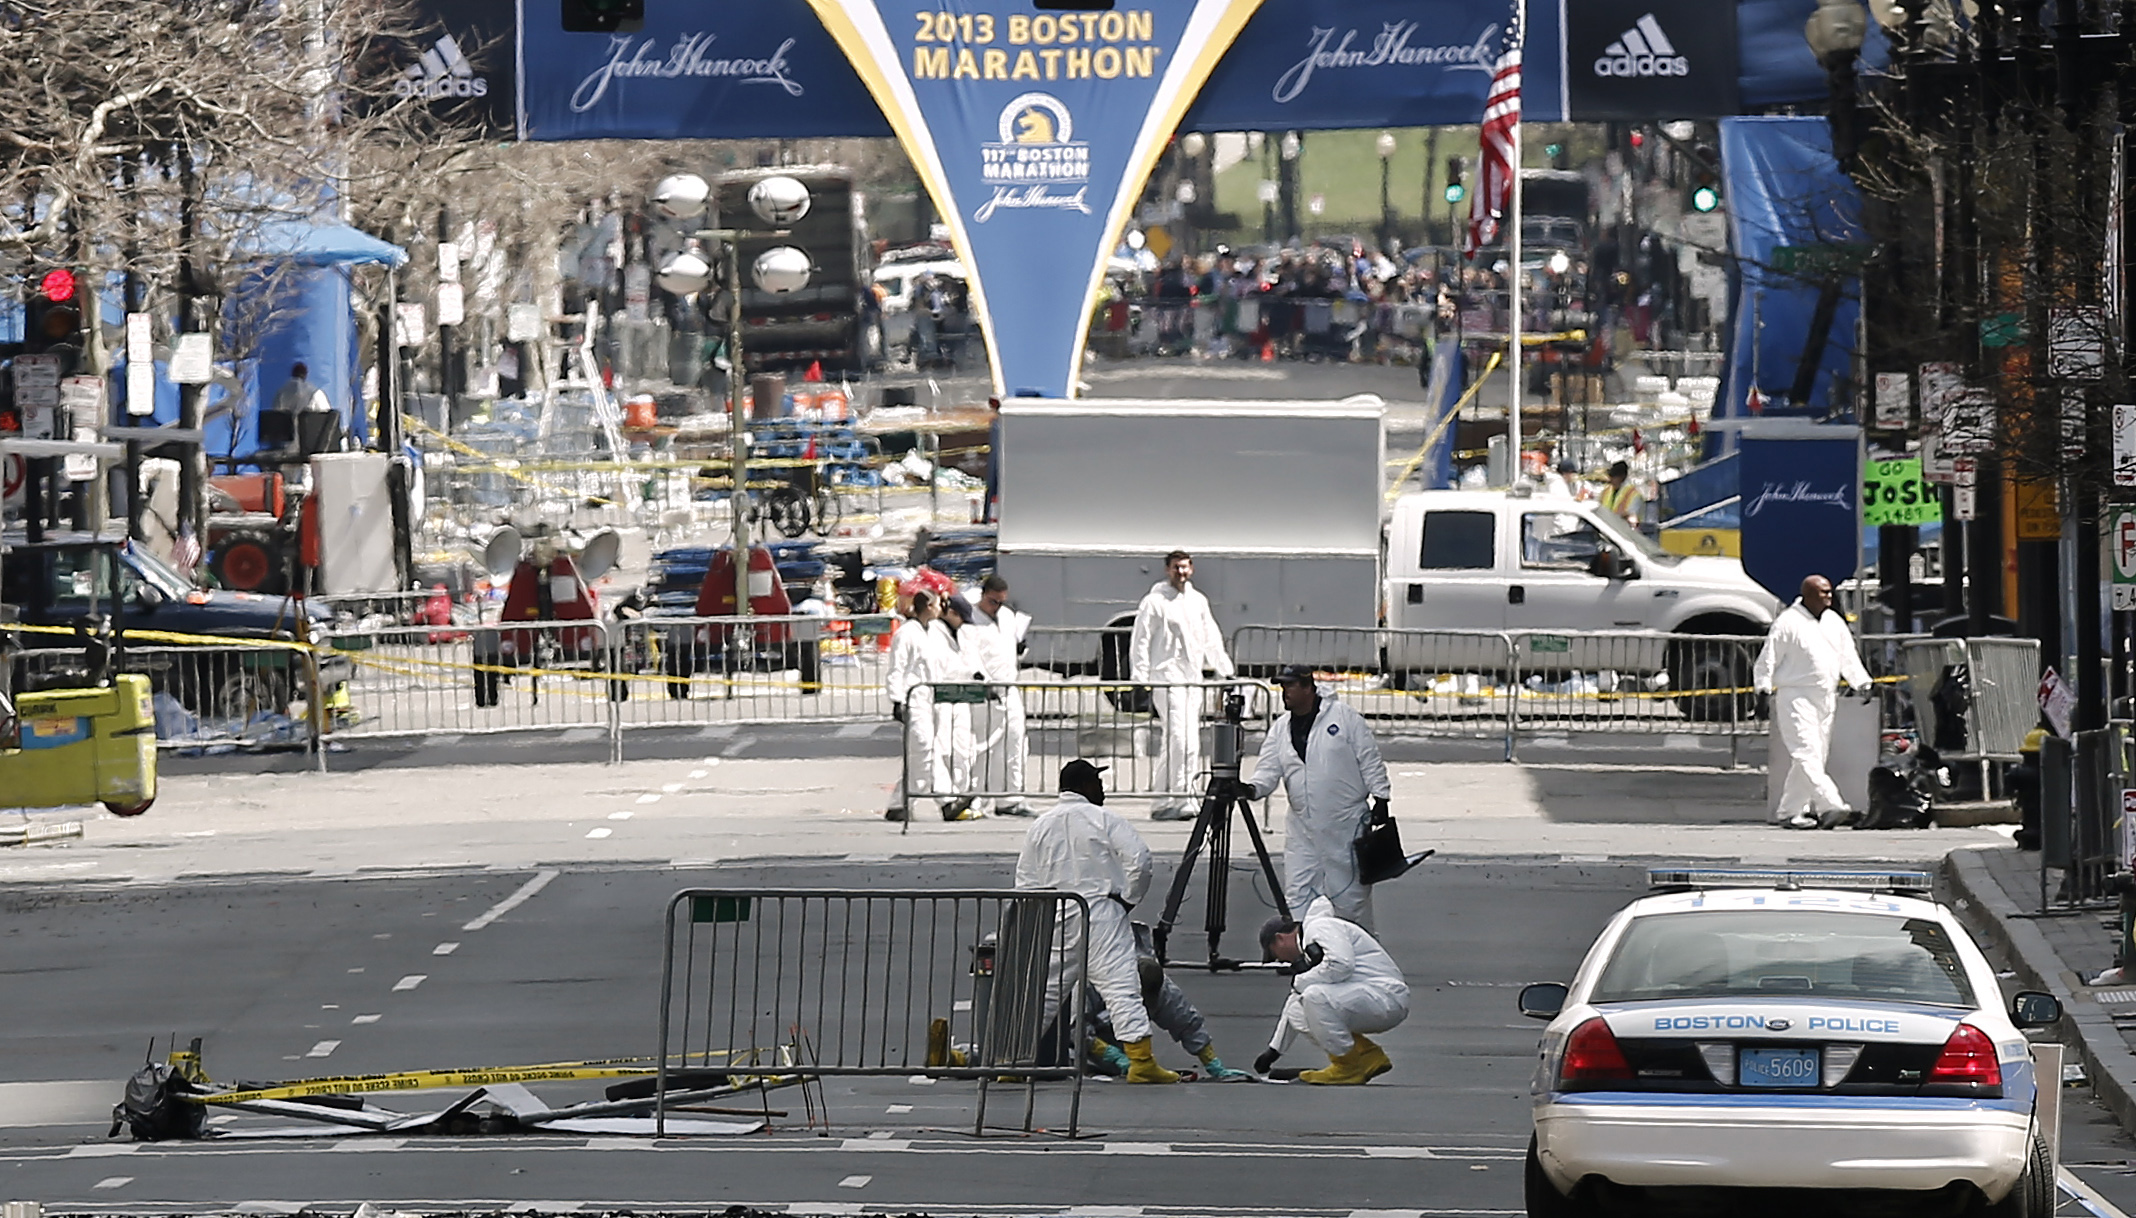 Bomb Suspect Images: Investigators May Have Found Individuals 'To speak with'